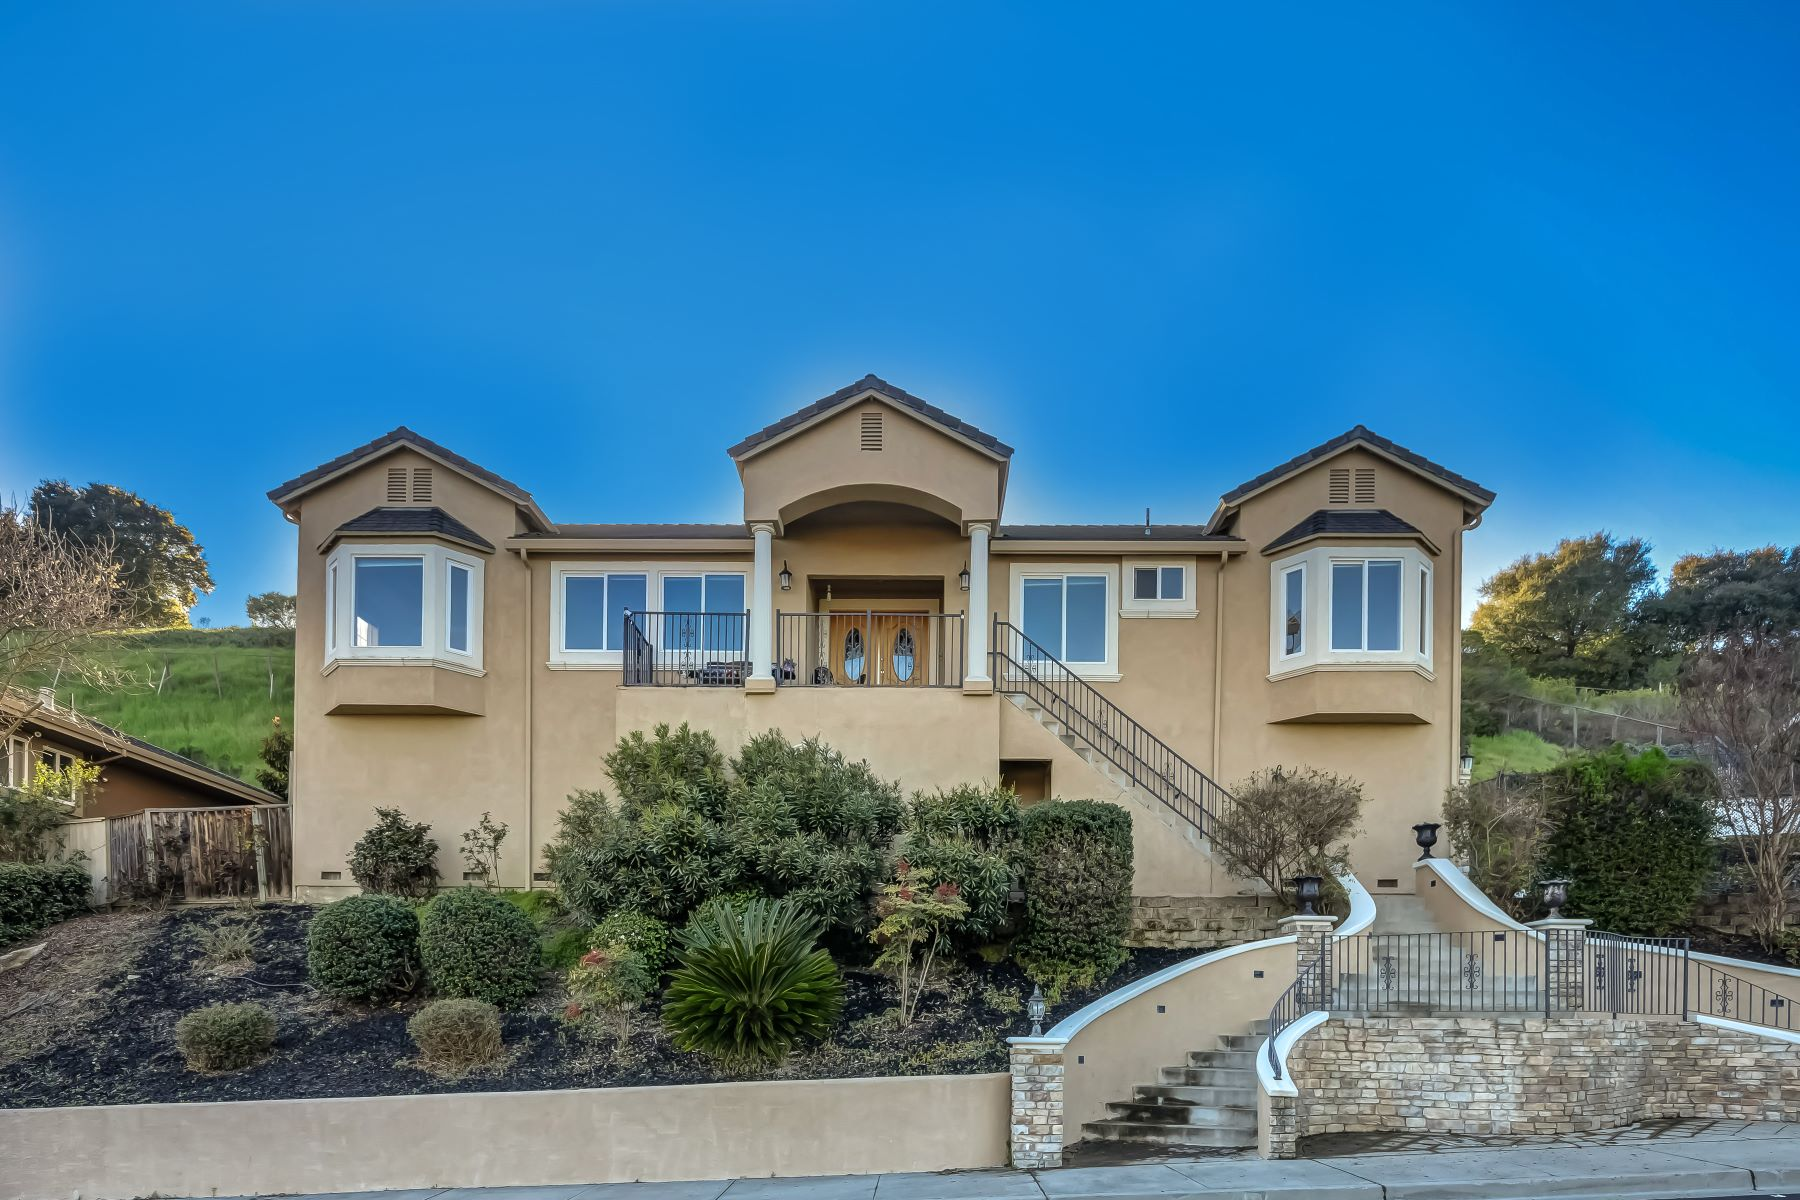 Single Family Home for Sale at 7940 Creekside Dr. 7940 Creekside Drive Dublin, California 94568 United States